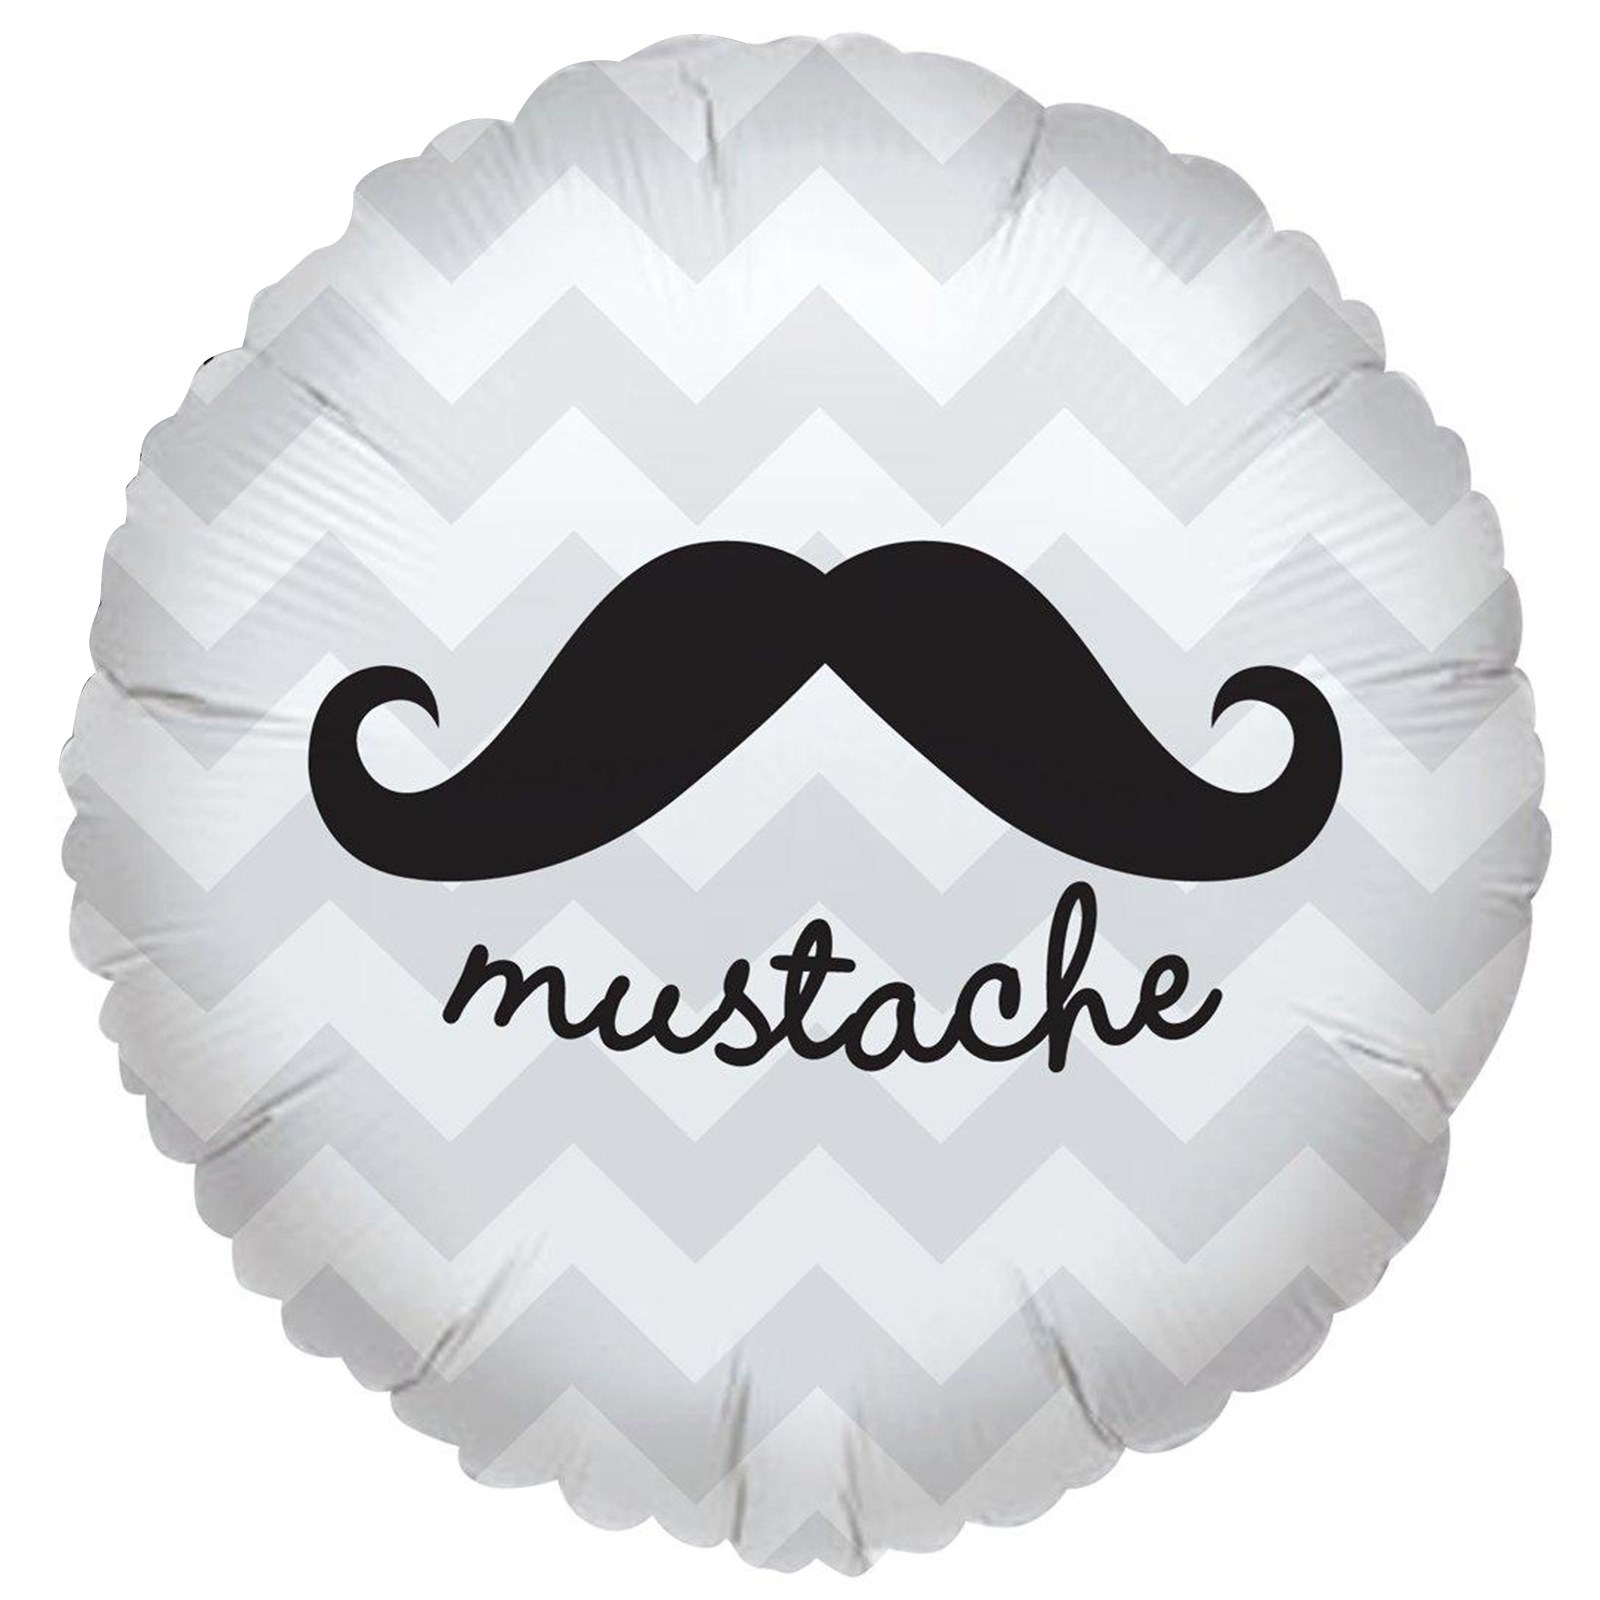 Image of Mustache Foil Balloon